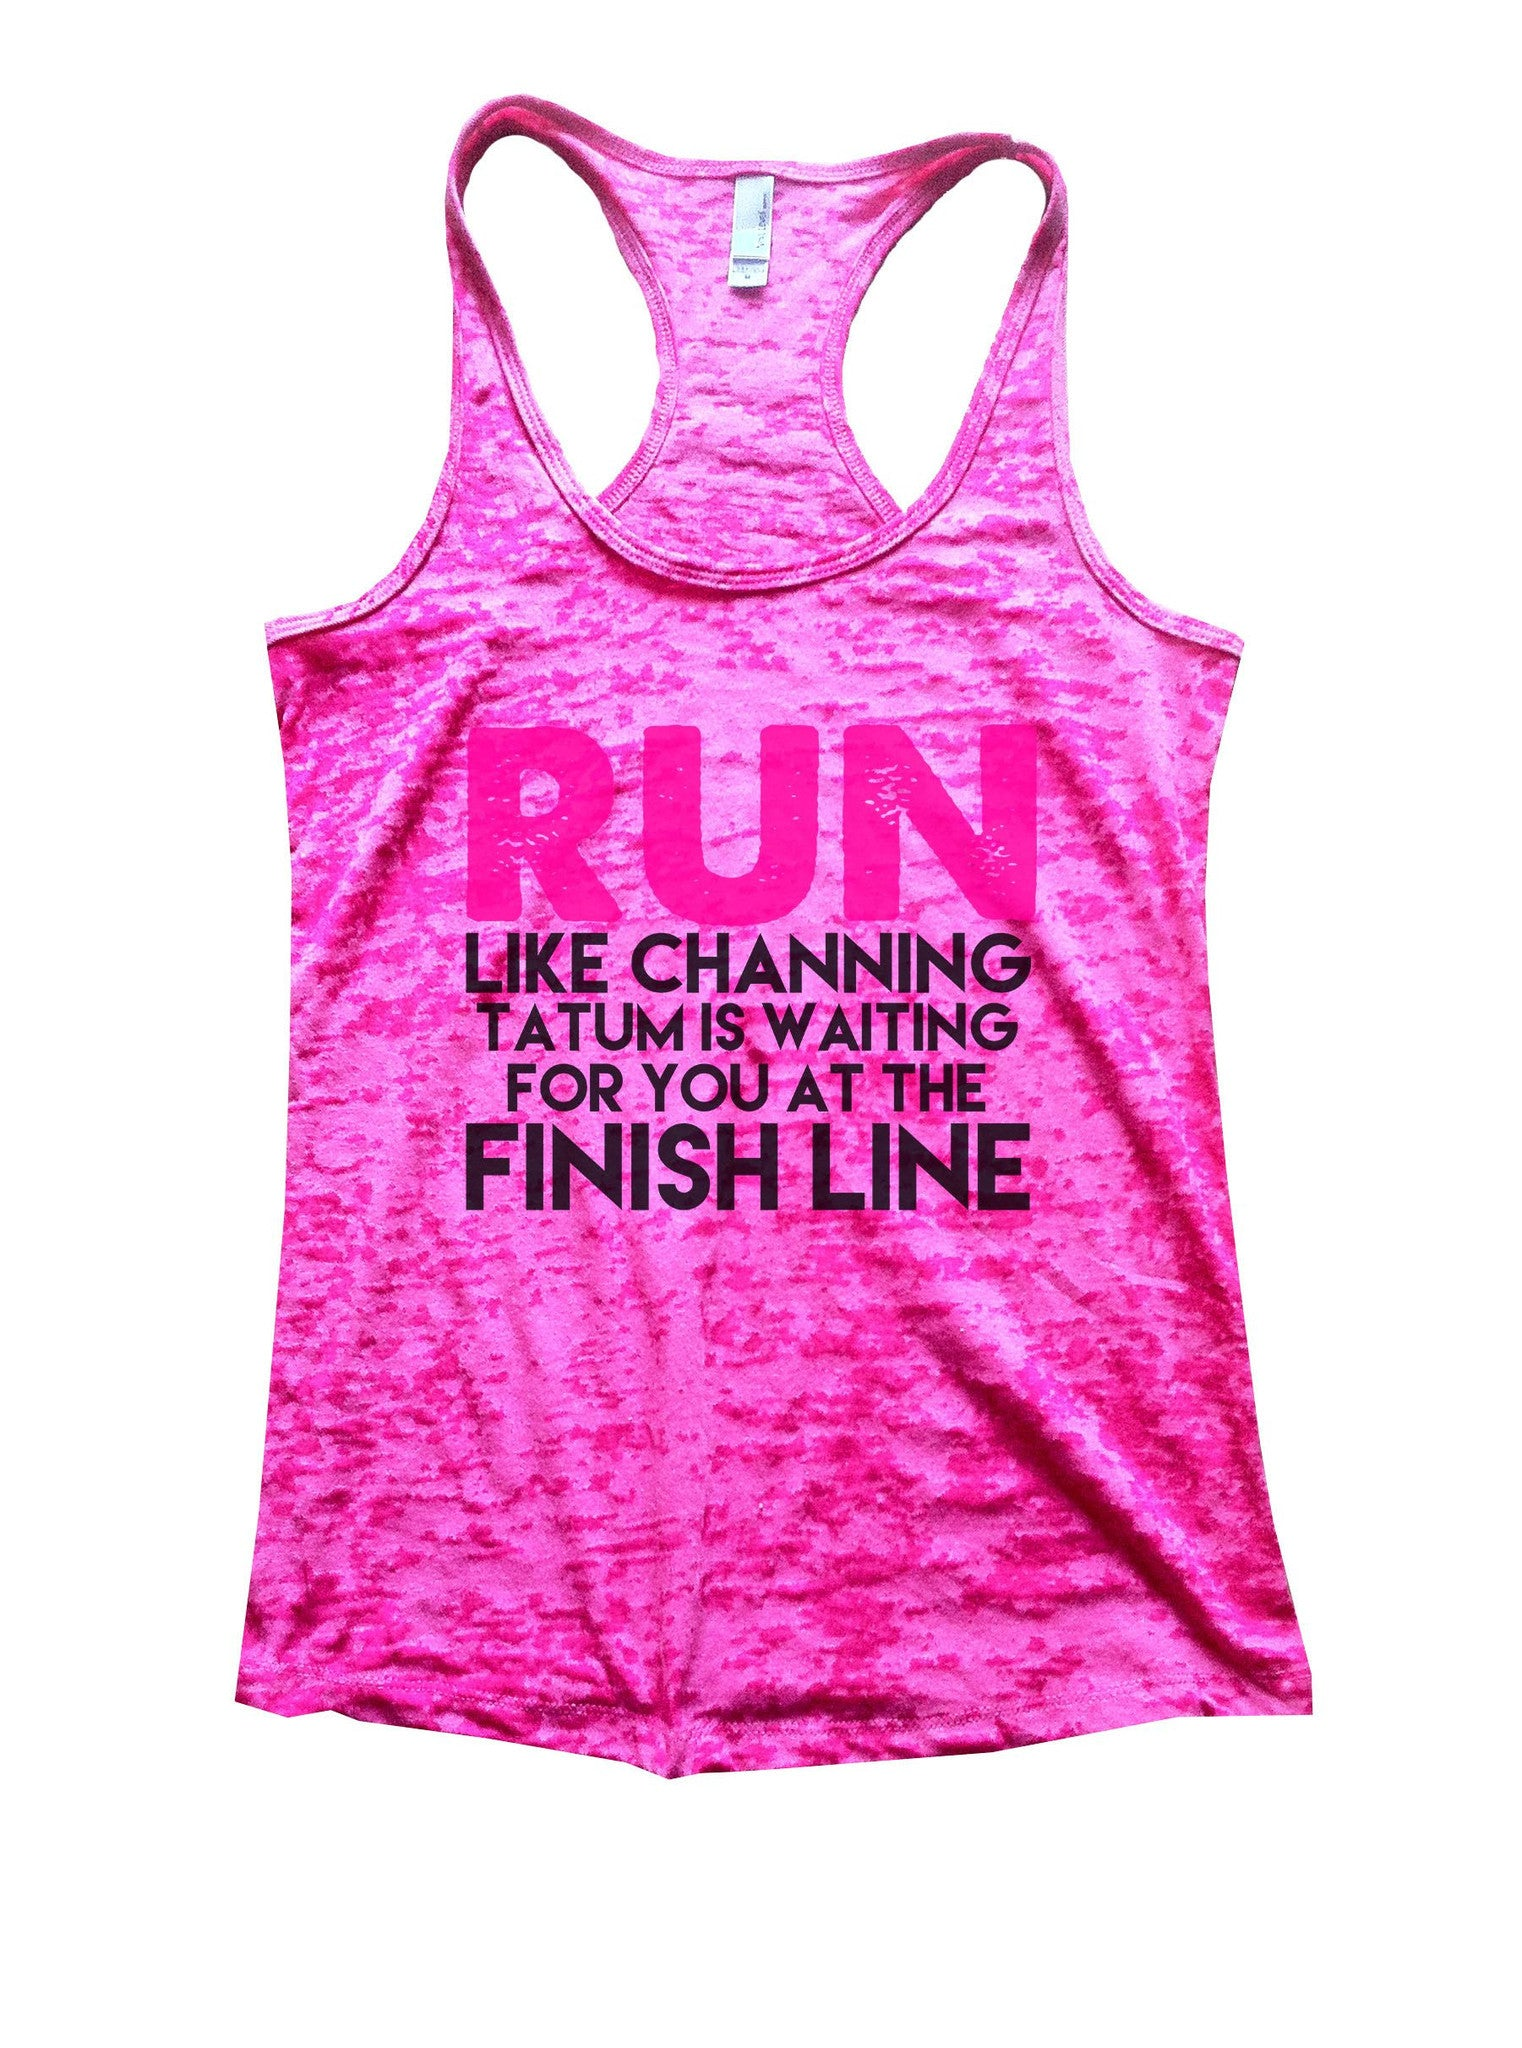 Run Like Channing Tatum Is Waiting For You At The Finish Line Burnout Tank Top By BurnoutTankTops.com - 872 - Funny Shirts Tank Tops Burnouts and Triblends  - 5